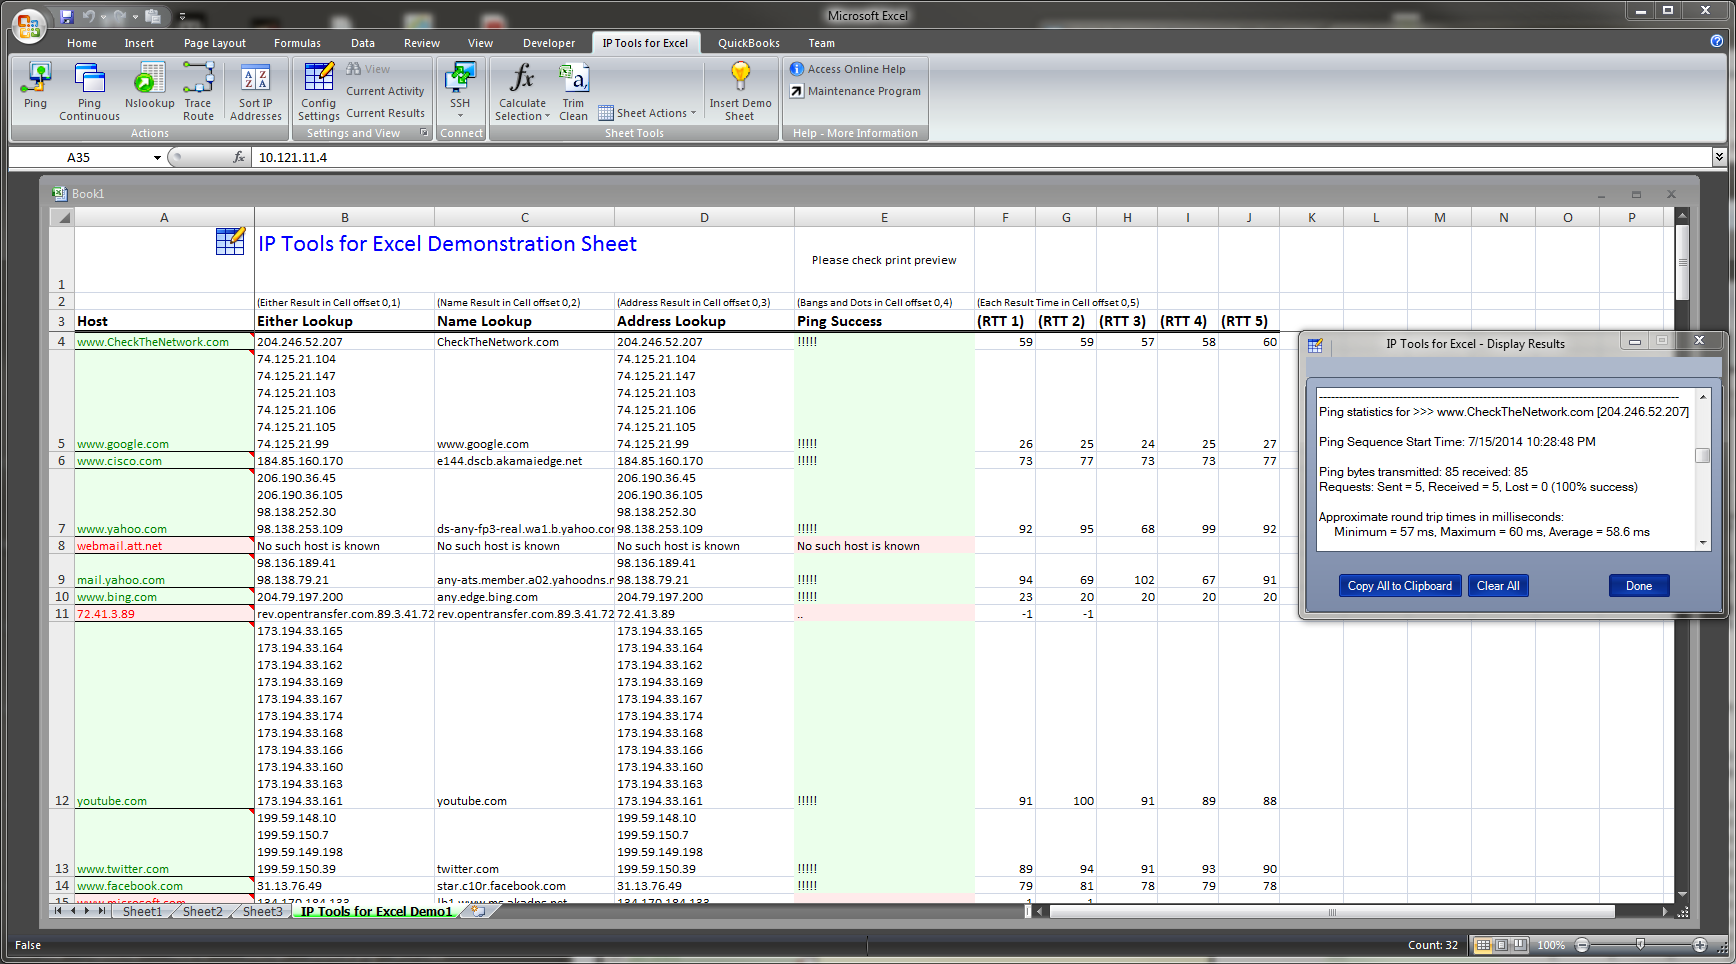 check the network ip tools for excel addin plug in